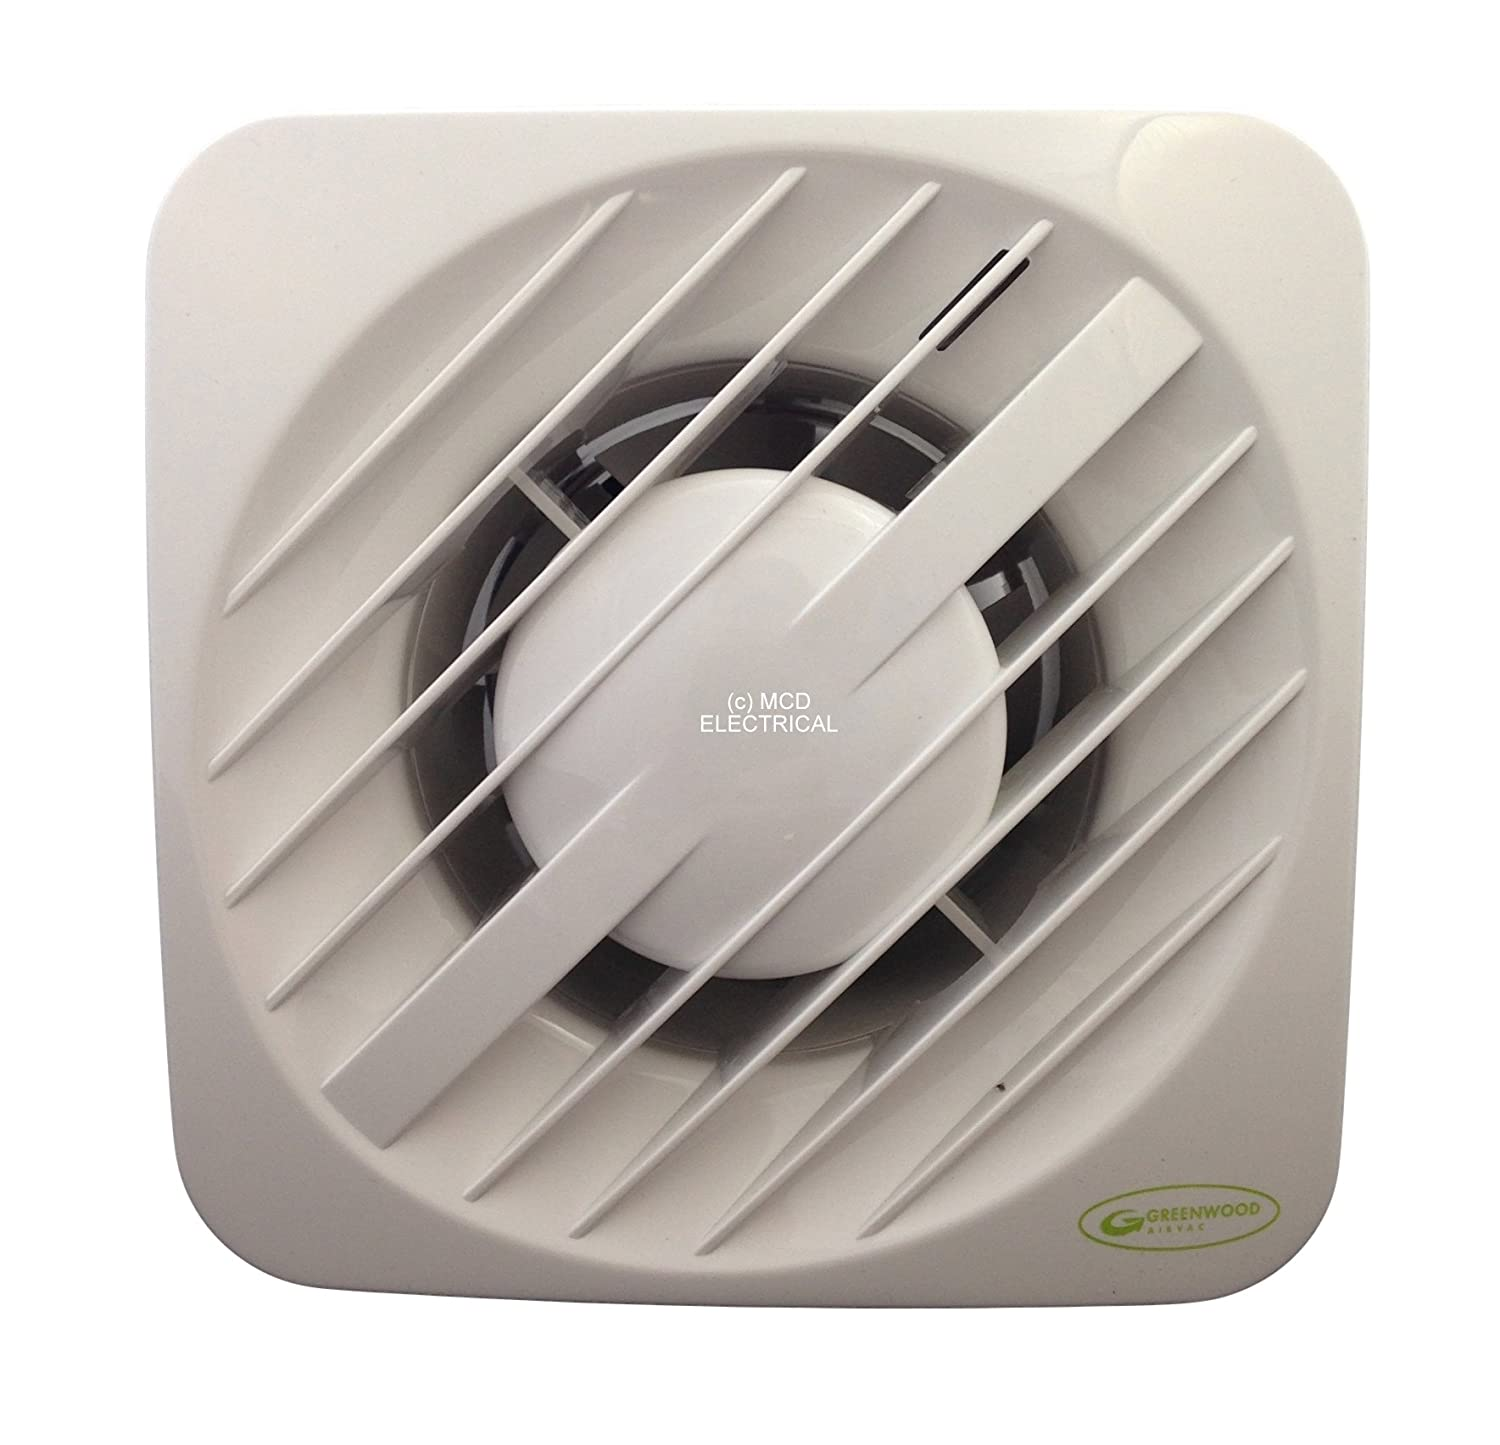 Bathroom Extractor Awesome Lovely Fan Uk On And Rhl Sf12 Wiring Diagram Greenwood Airvac Axs Toilet Mm Inch Standard Version No Timer Amazoncouk Diy U Tools With